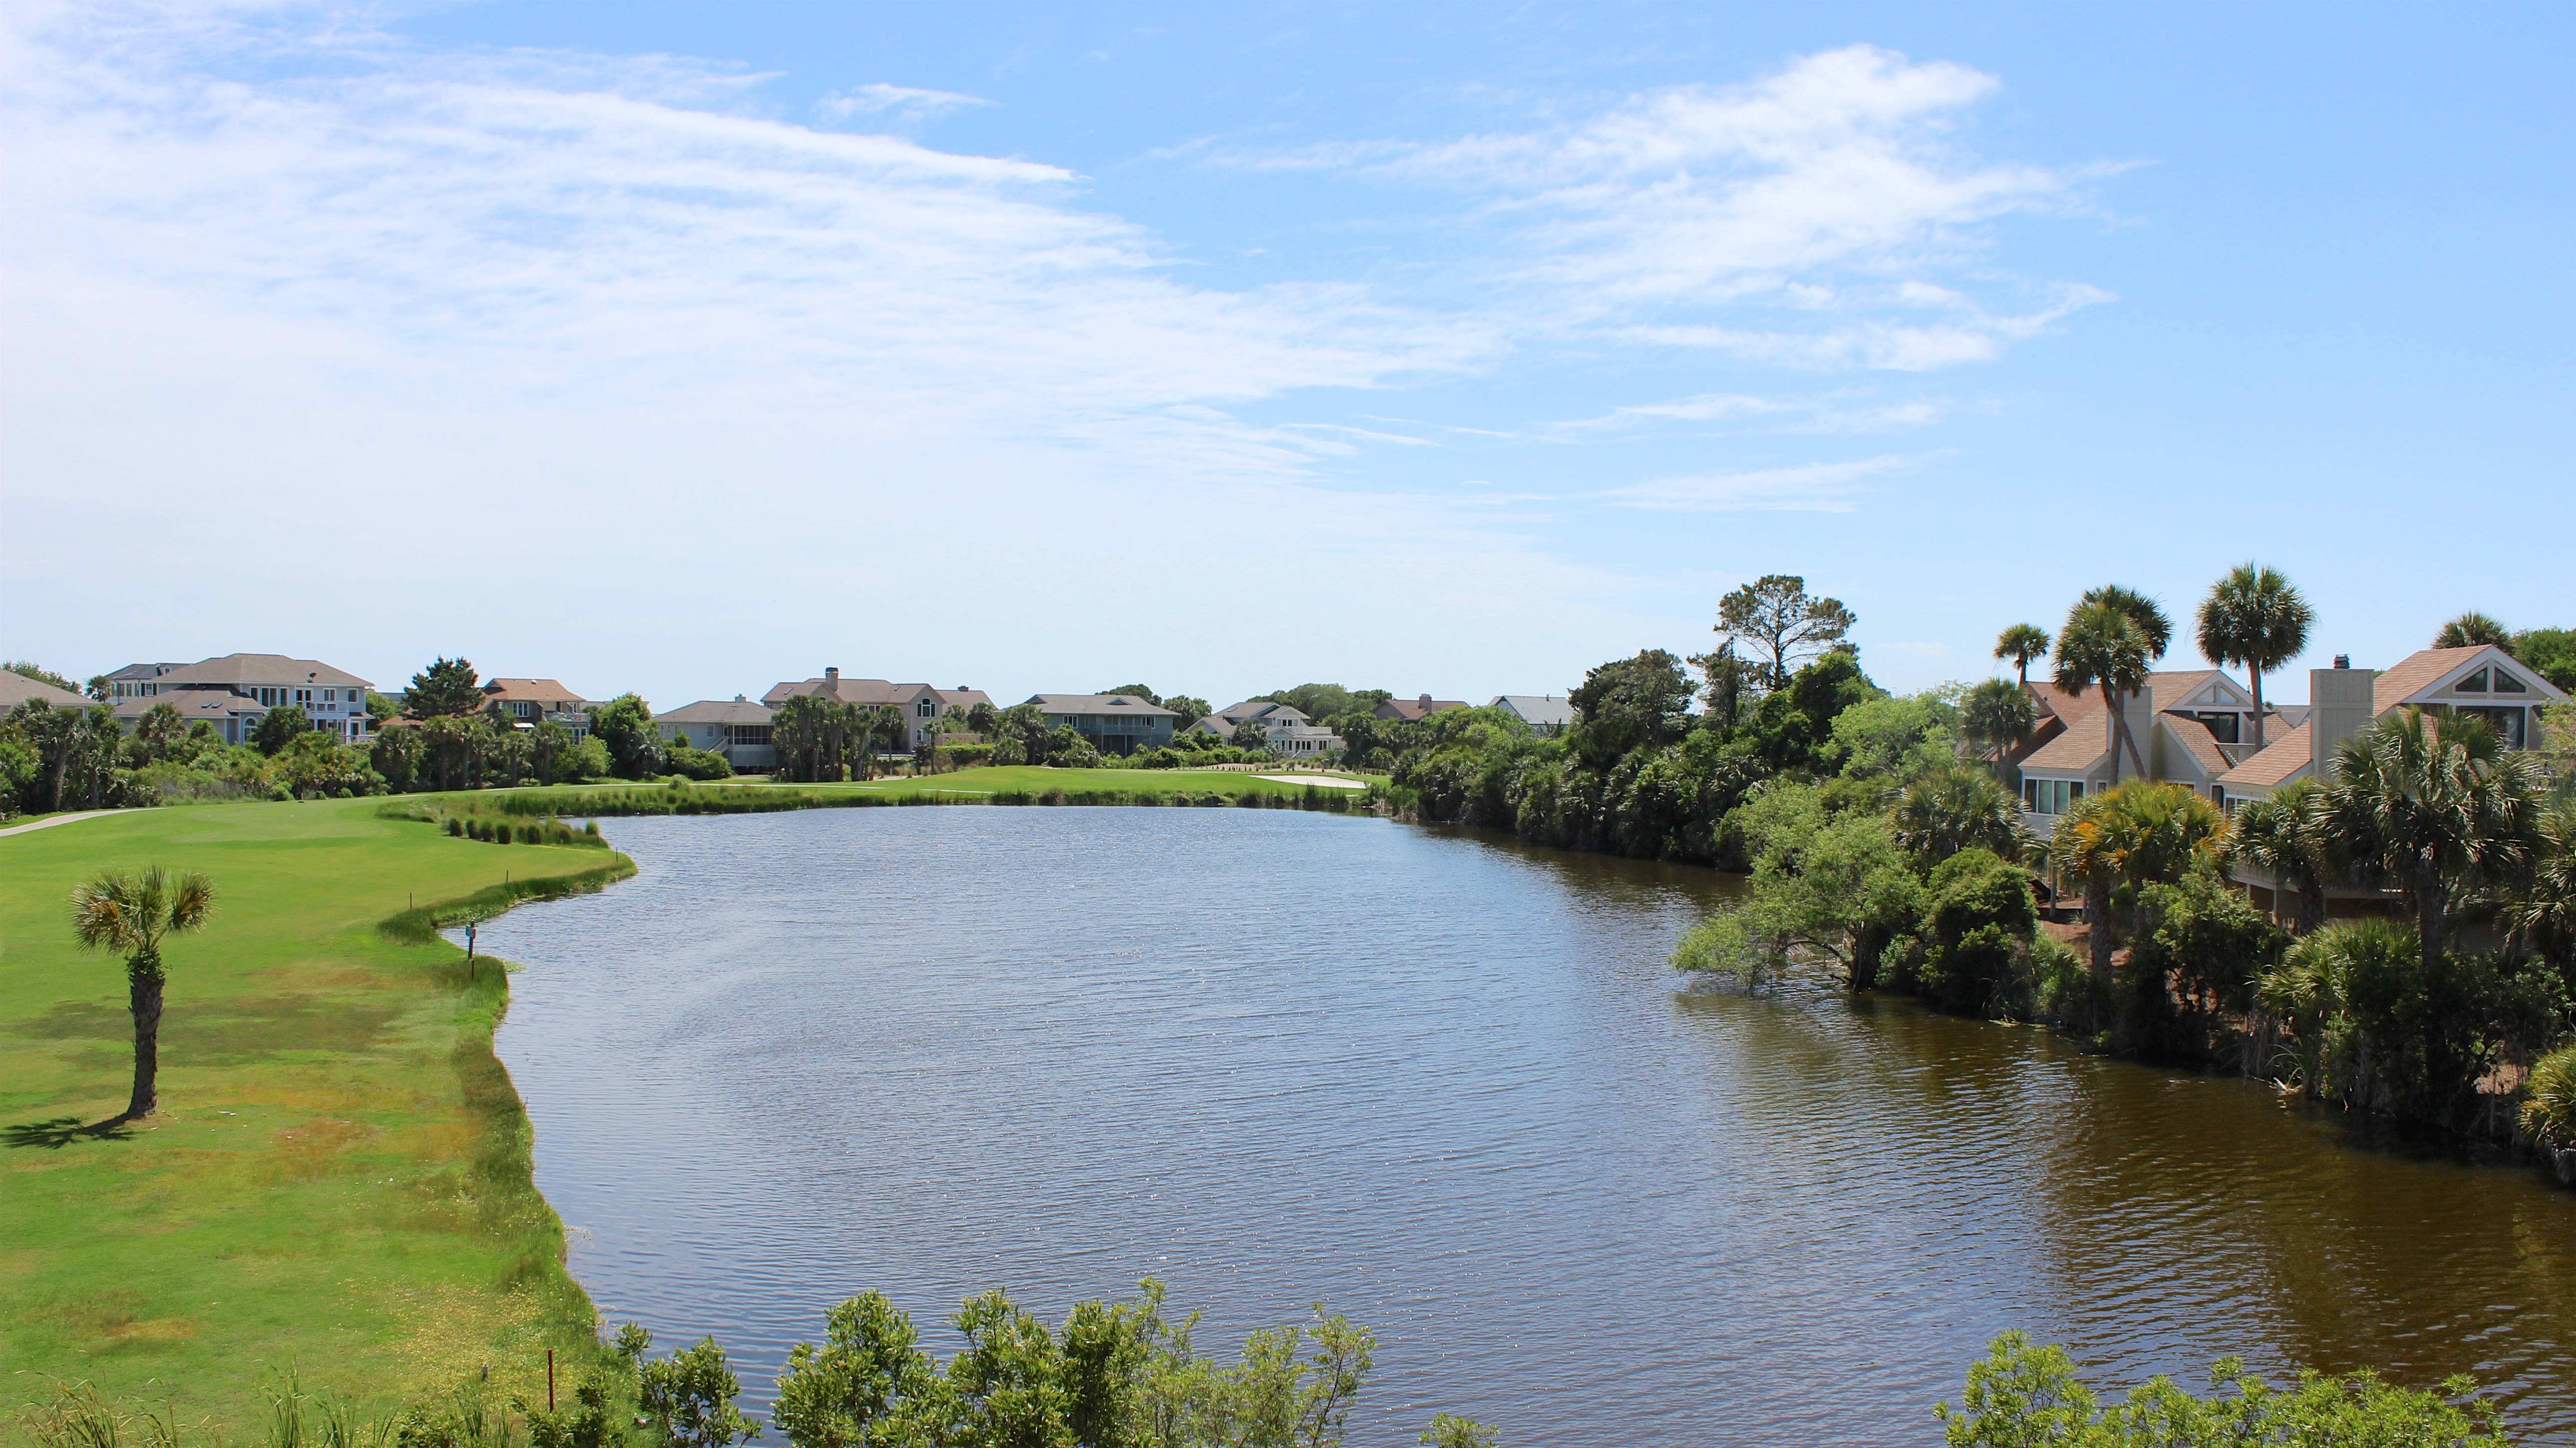 Watch the wildlife on the large lagoon.